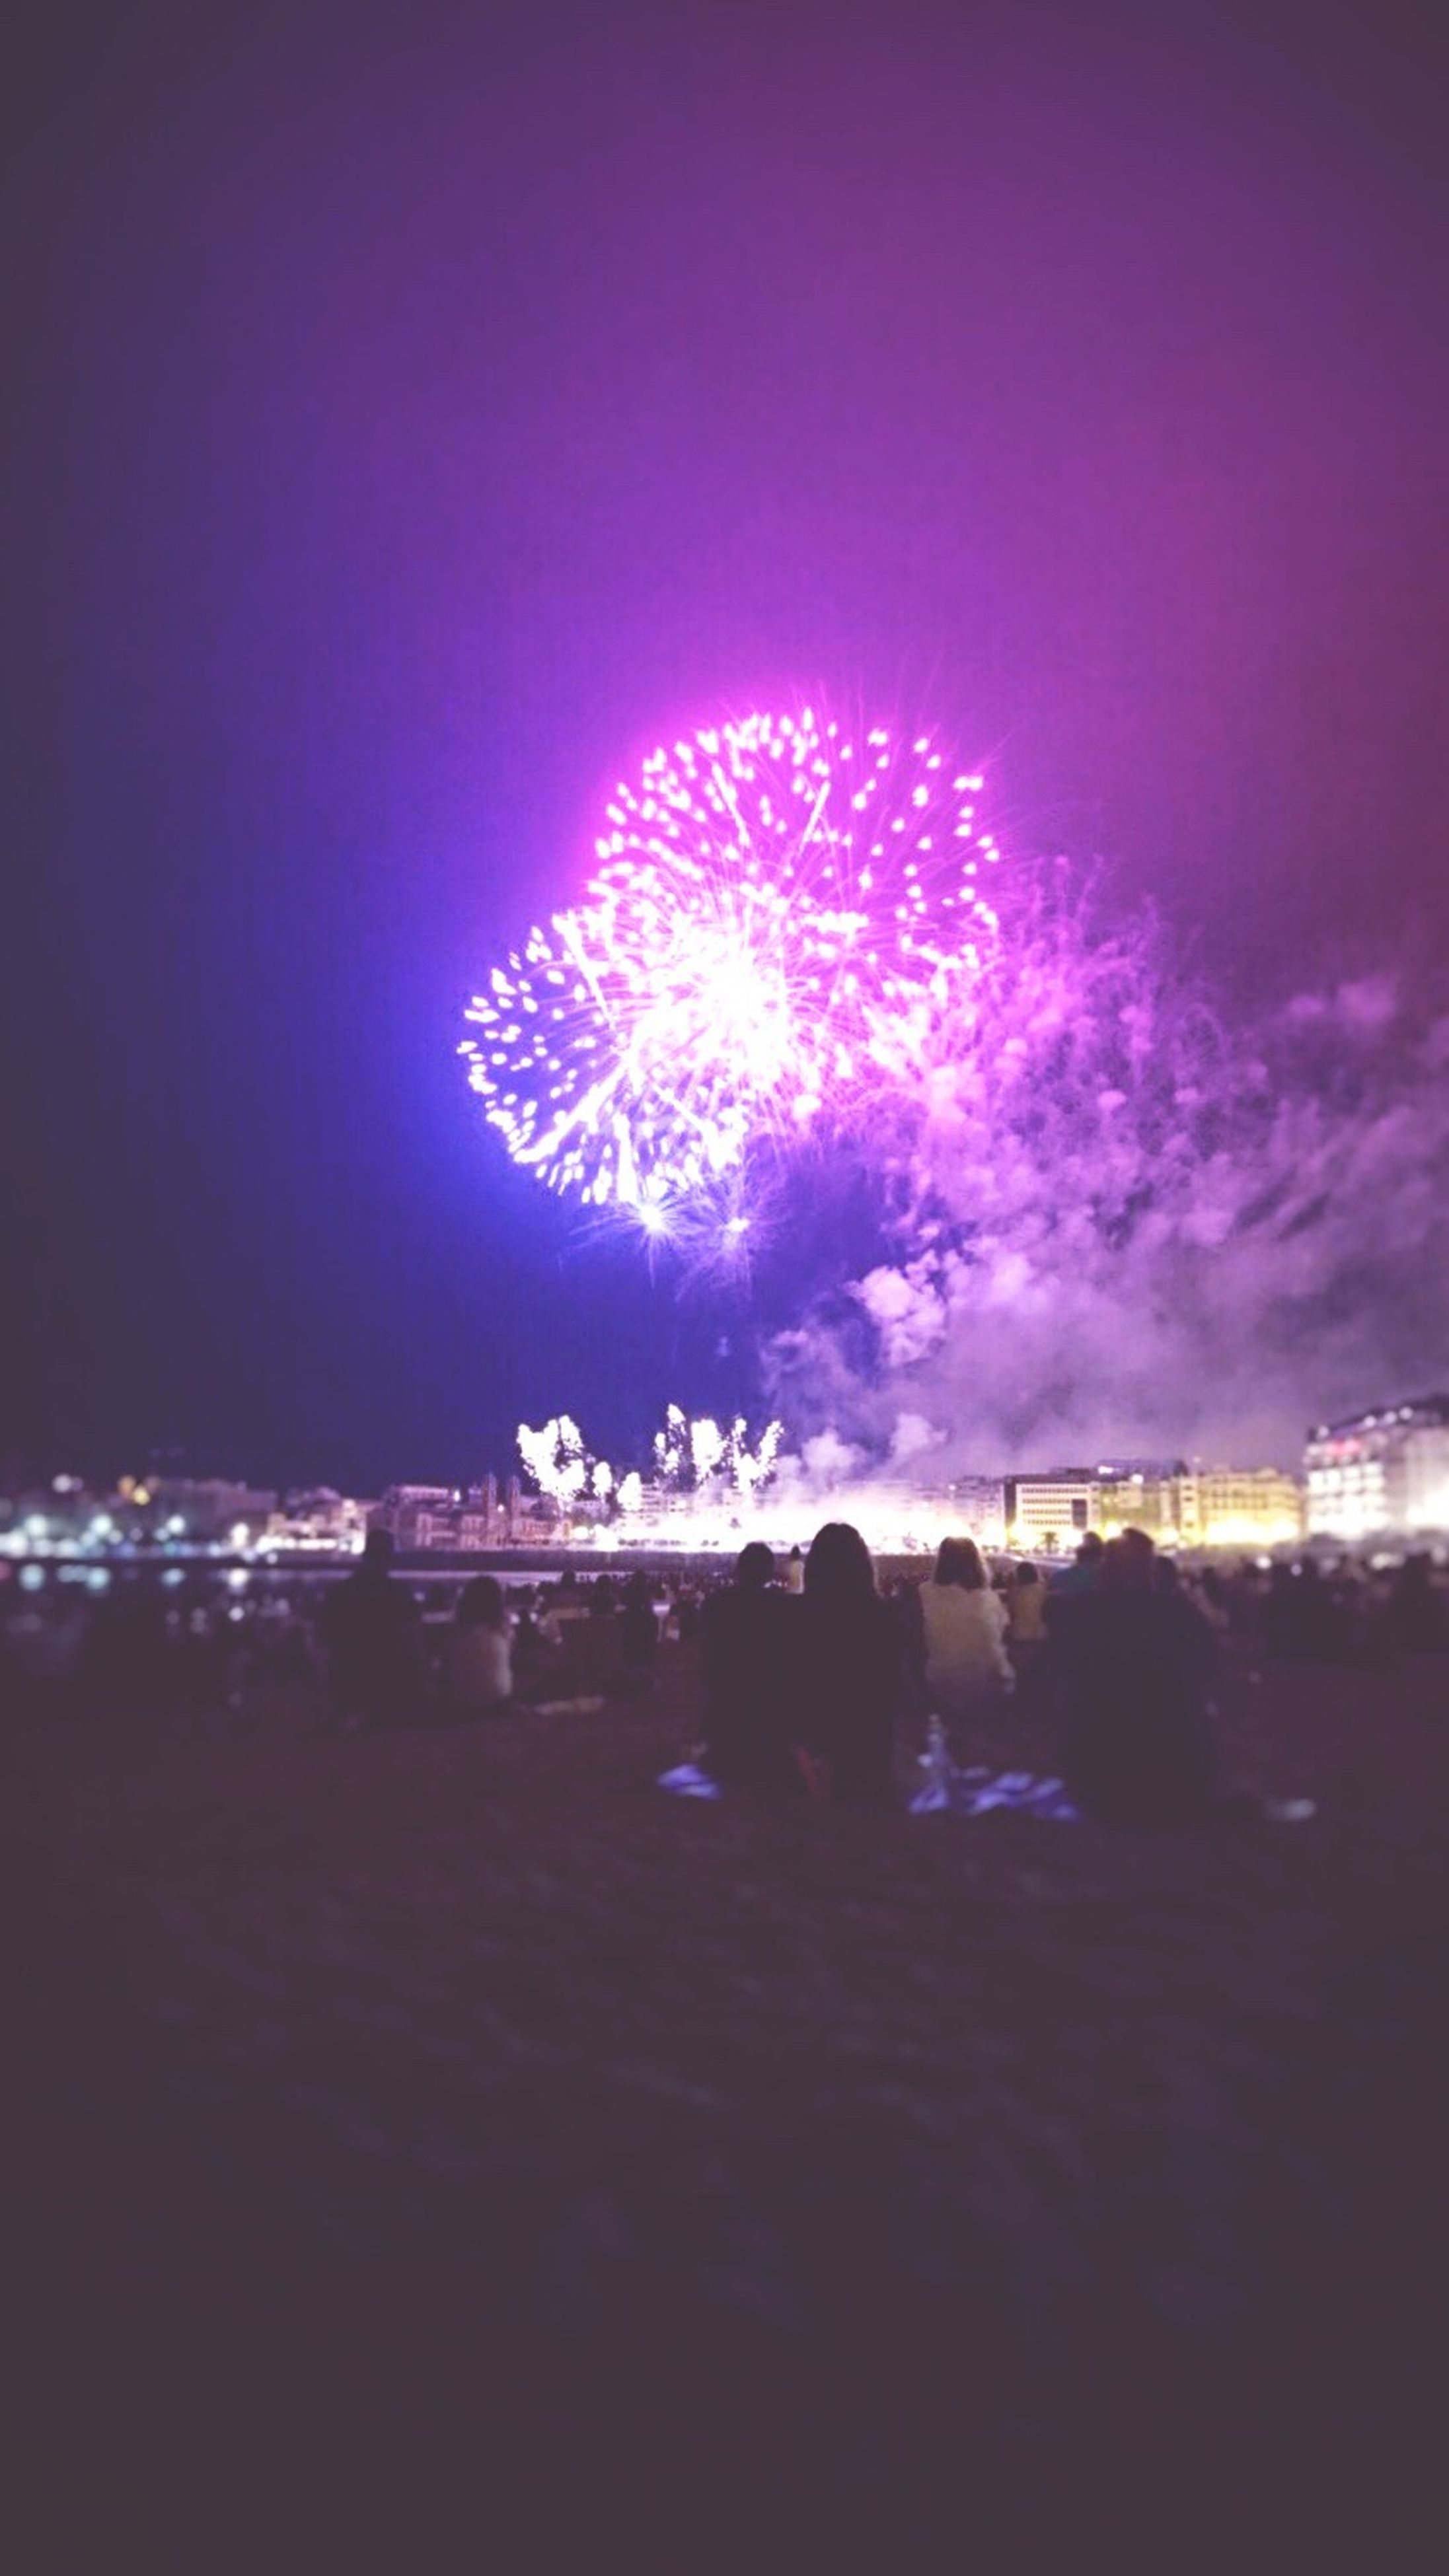 illuminated, night, celebration, firework display, glowing, exploding, sparks, firework - man made object, city life, sky, event, outdoors, dark, person, entertainment